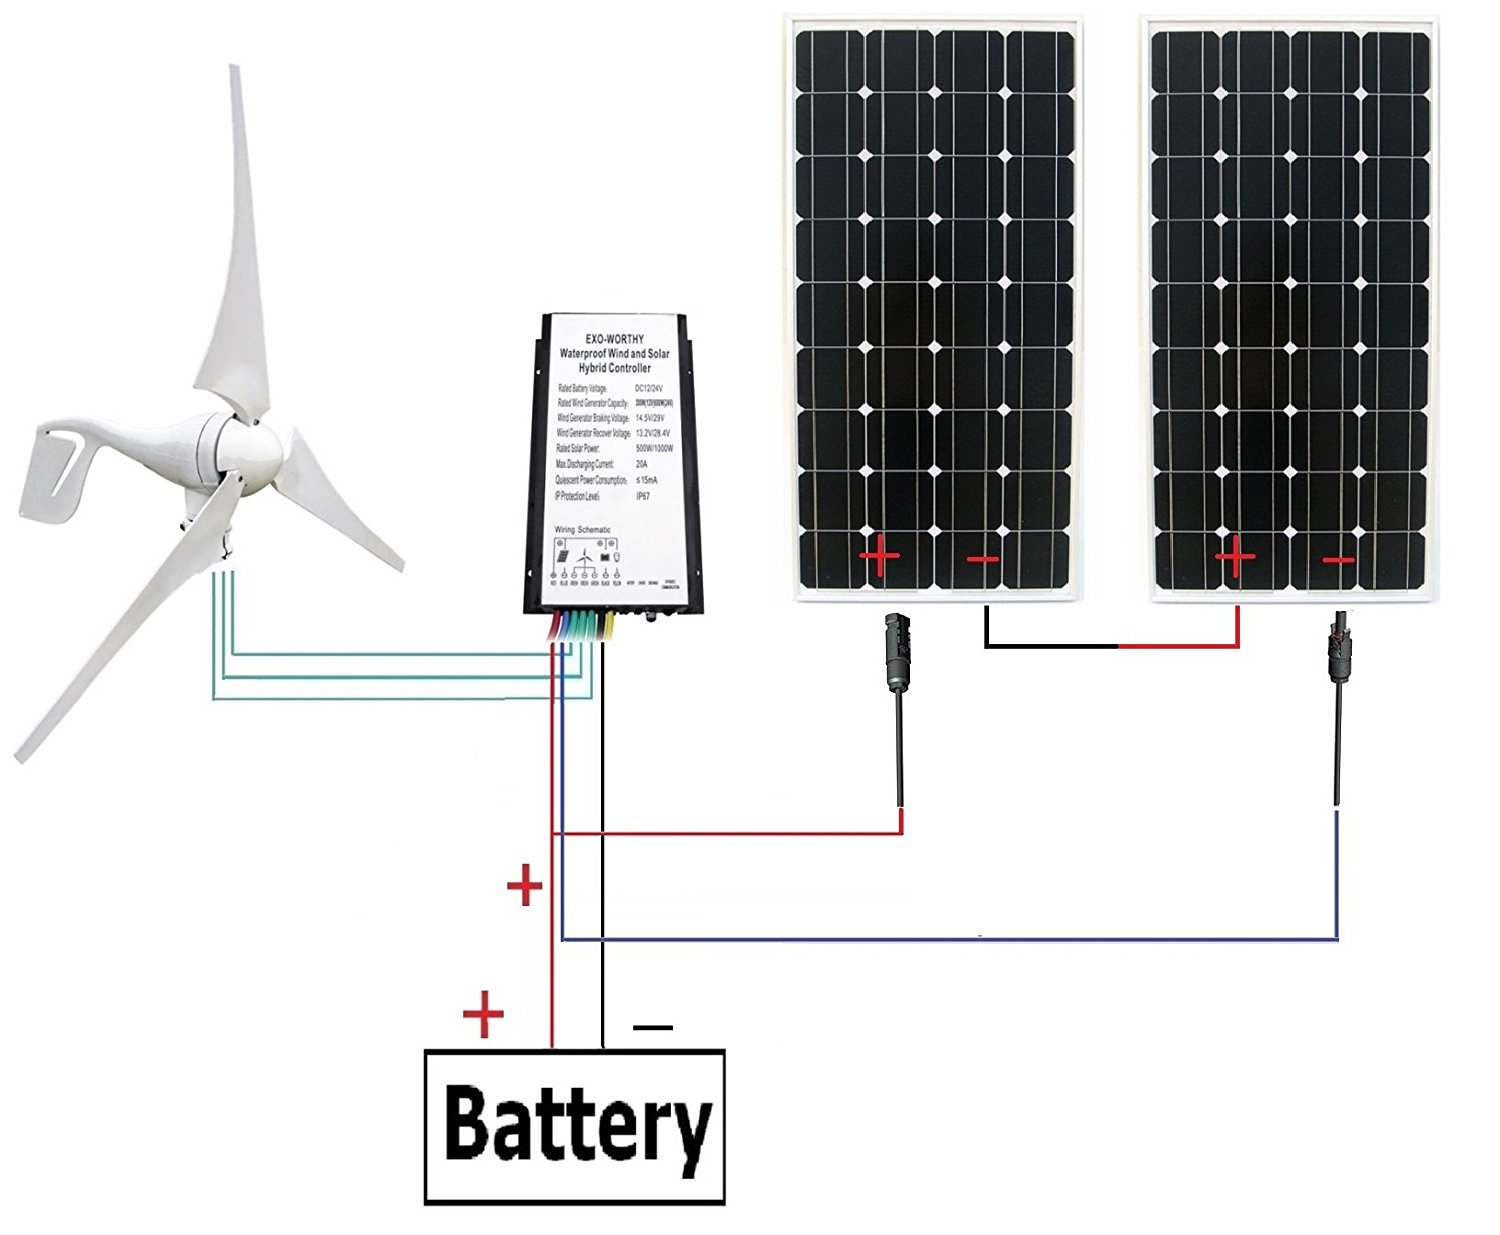 hight resolution of eco worthy 24 volts 600 watts wind solar power 12v 24v 400w wind